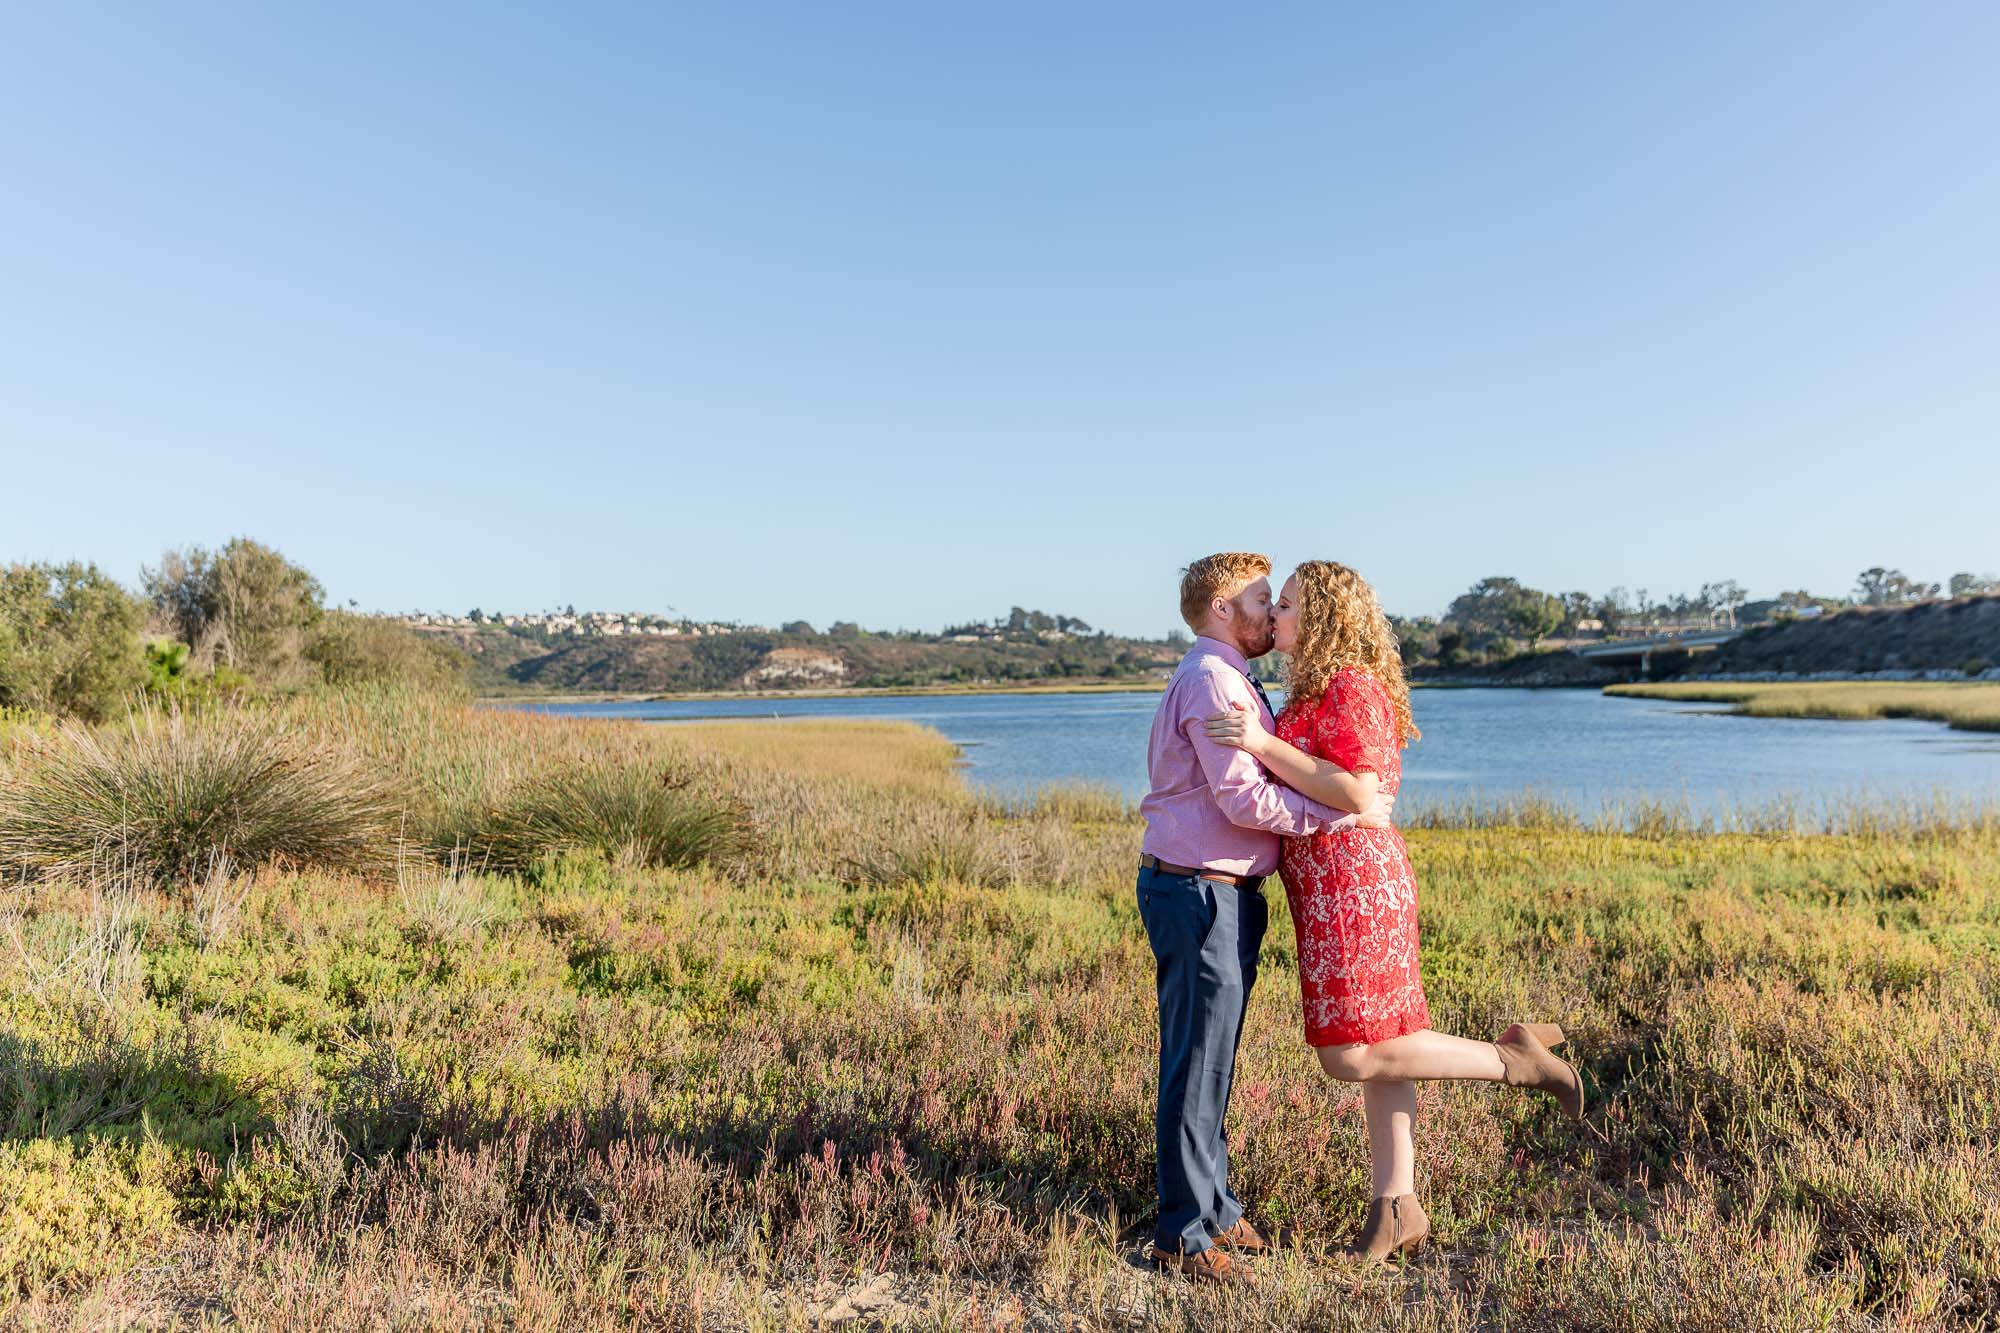 Tierney_Gregory_Batiquitos_Lagoon_Engagement_Session_034.jpg